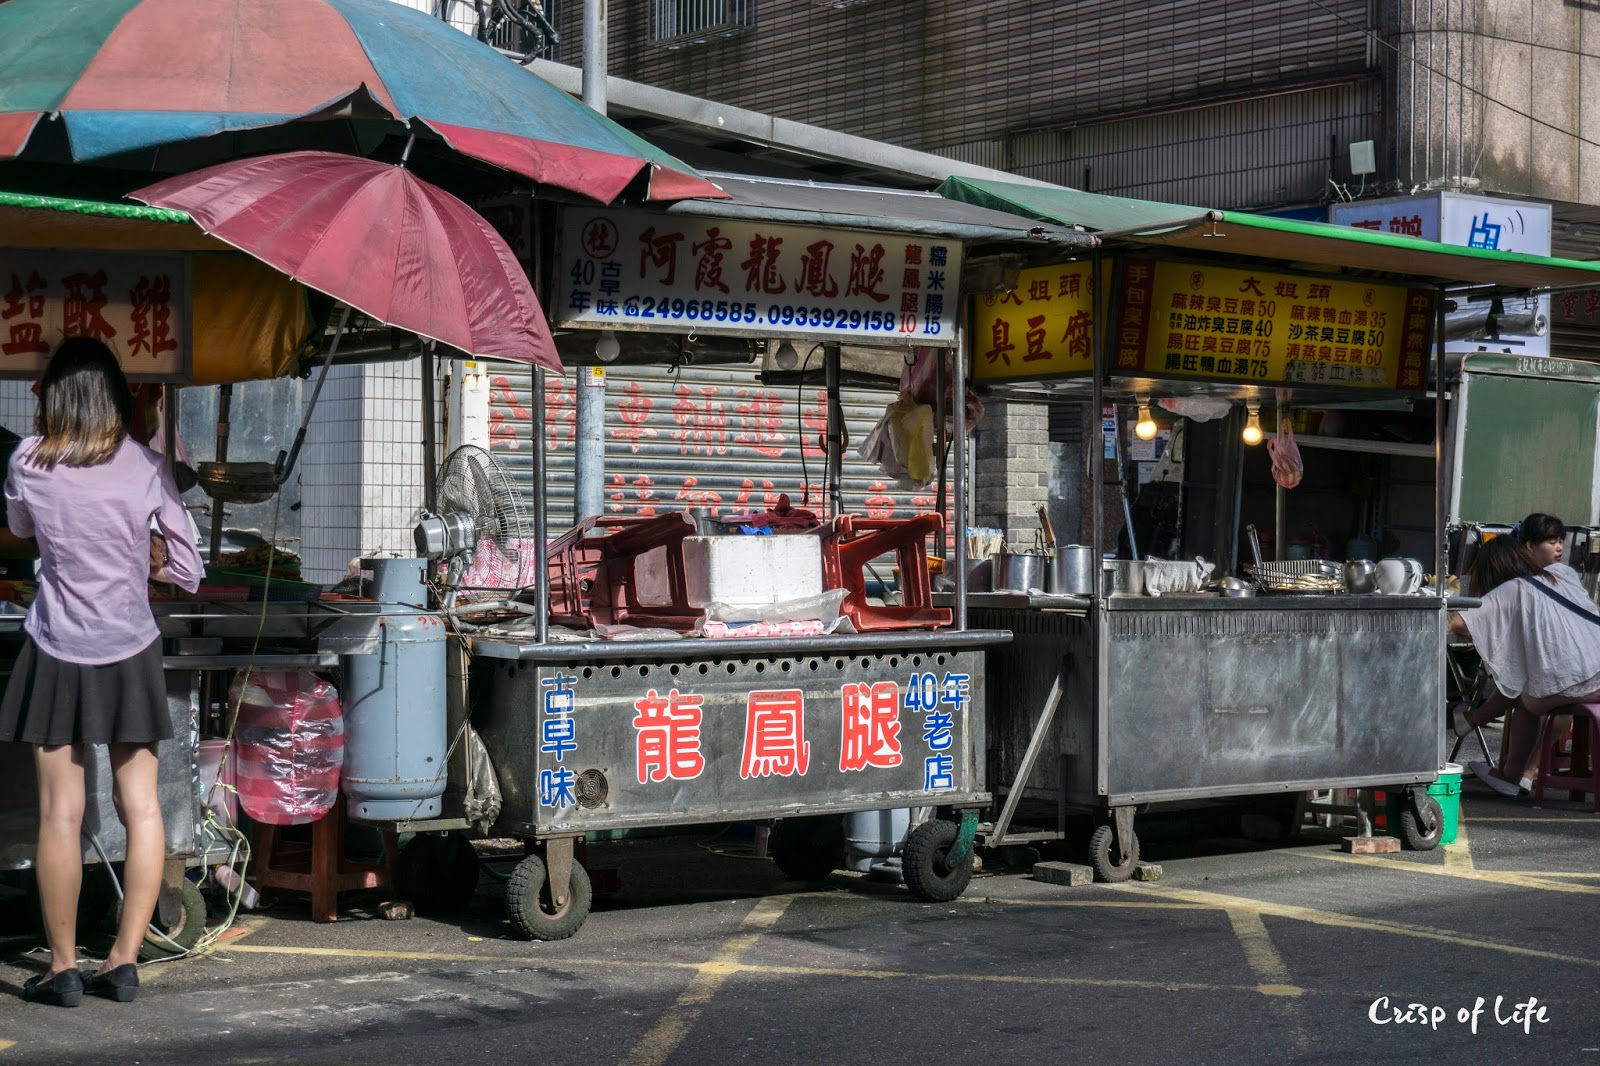 [TAIPEI 台北] Day 4: Travel to Shi Fen and Jiu Fen, Rui Fang Food Street 第四天:九份和十份,瑞芳美食街